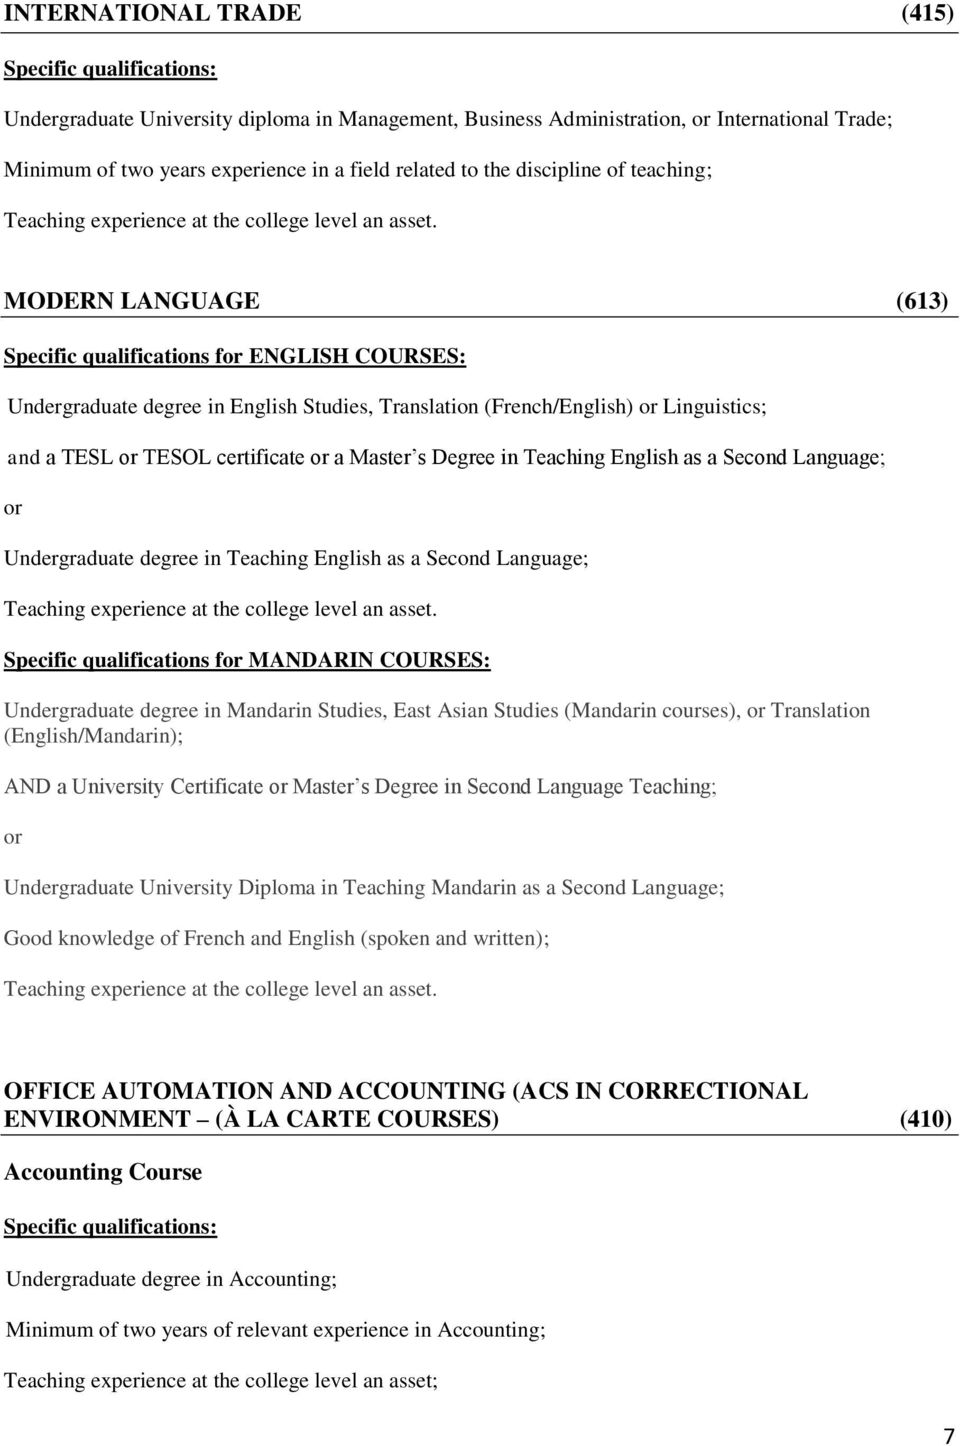 Degree in Teaching English as a Second Language; Undergraduate degree in Teaching English as a Second Language; Specific qualifications f MANDARIN COURSES: Undergraduate degree in Mandarin Studies,